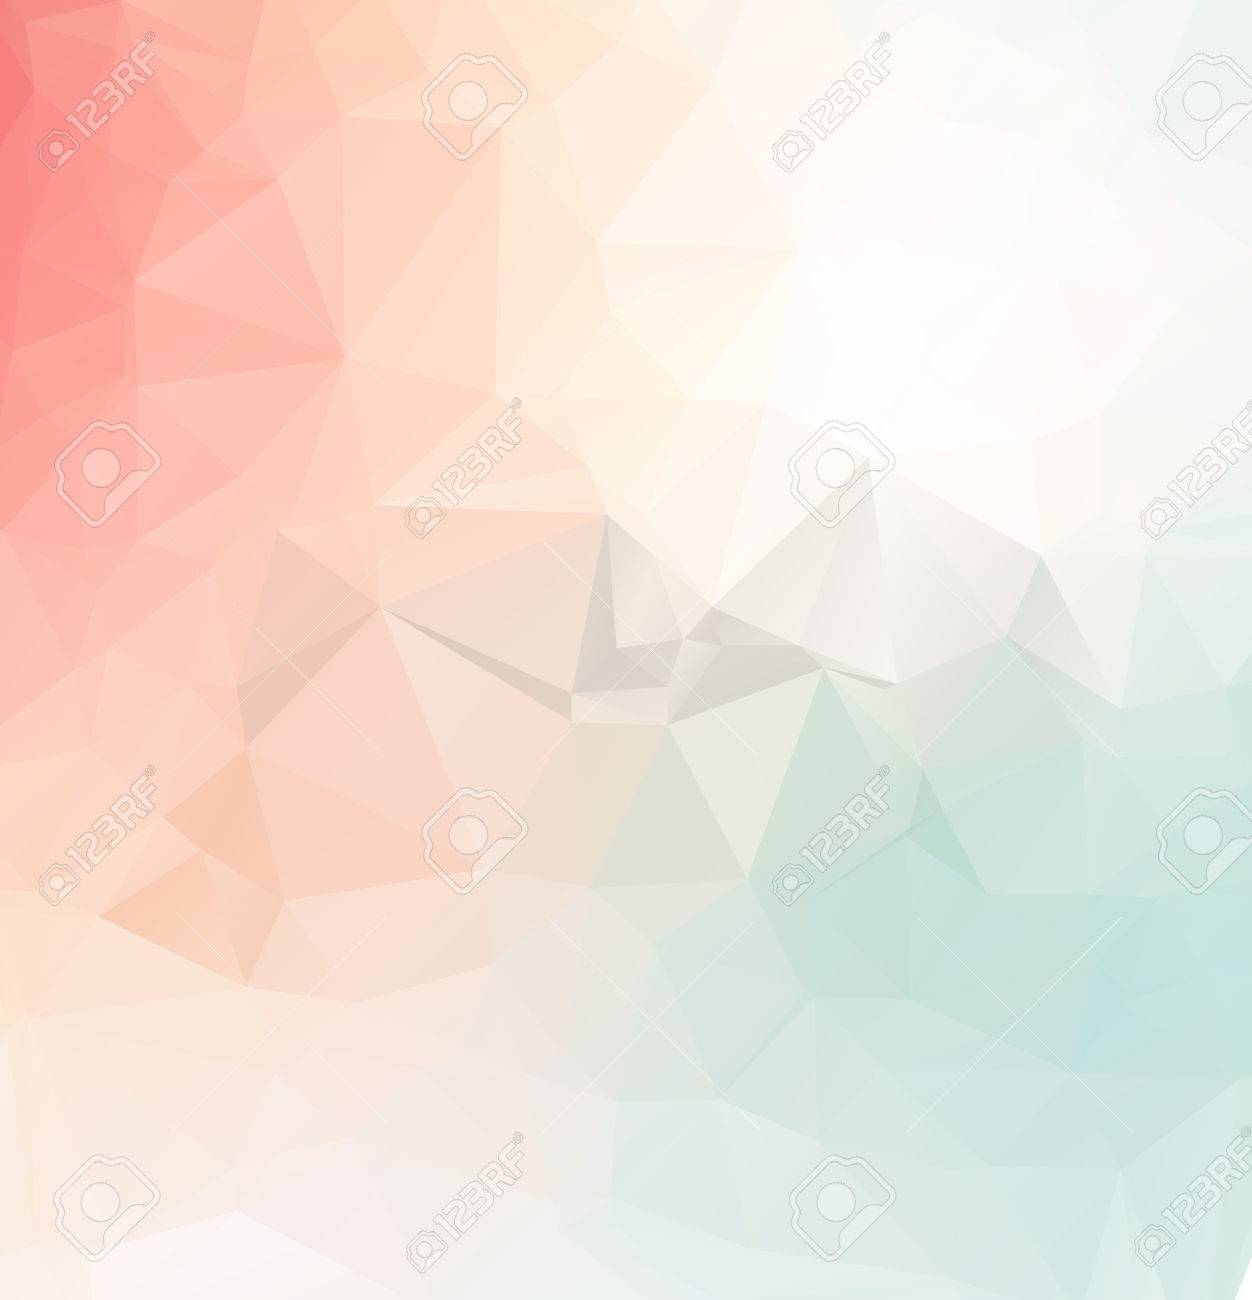 Abstract colorful Triangle Geometrical Illustration Modern Design mosaic - 54855950